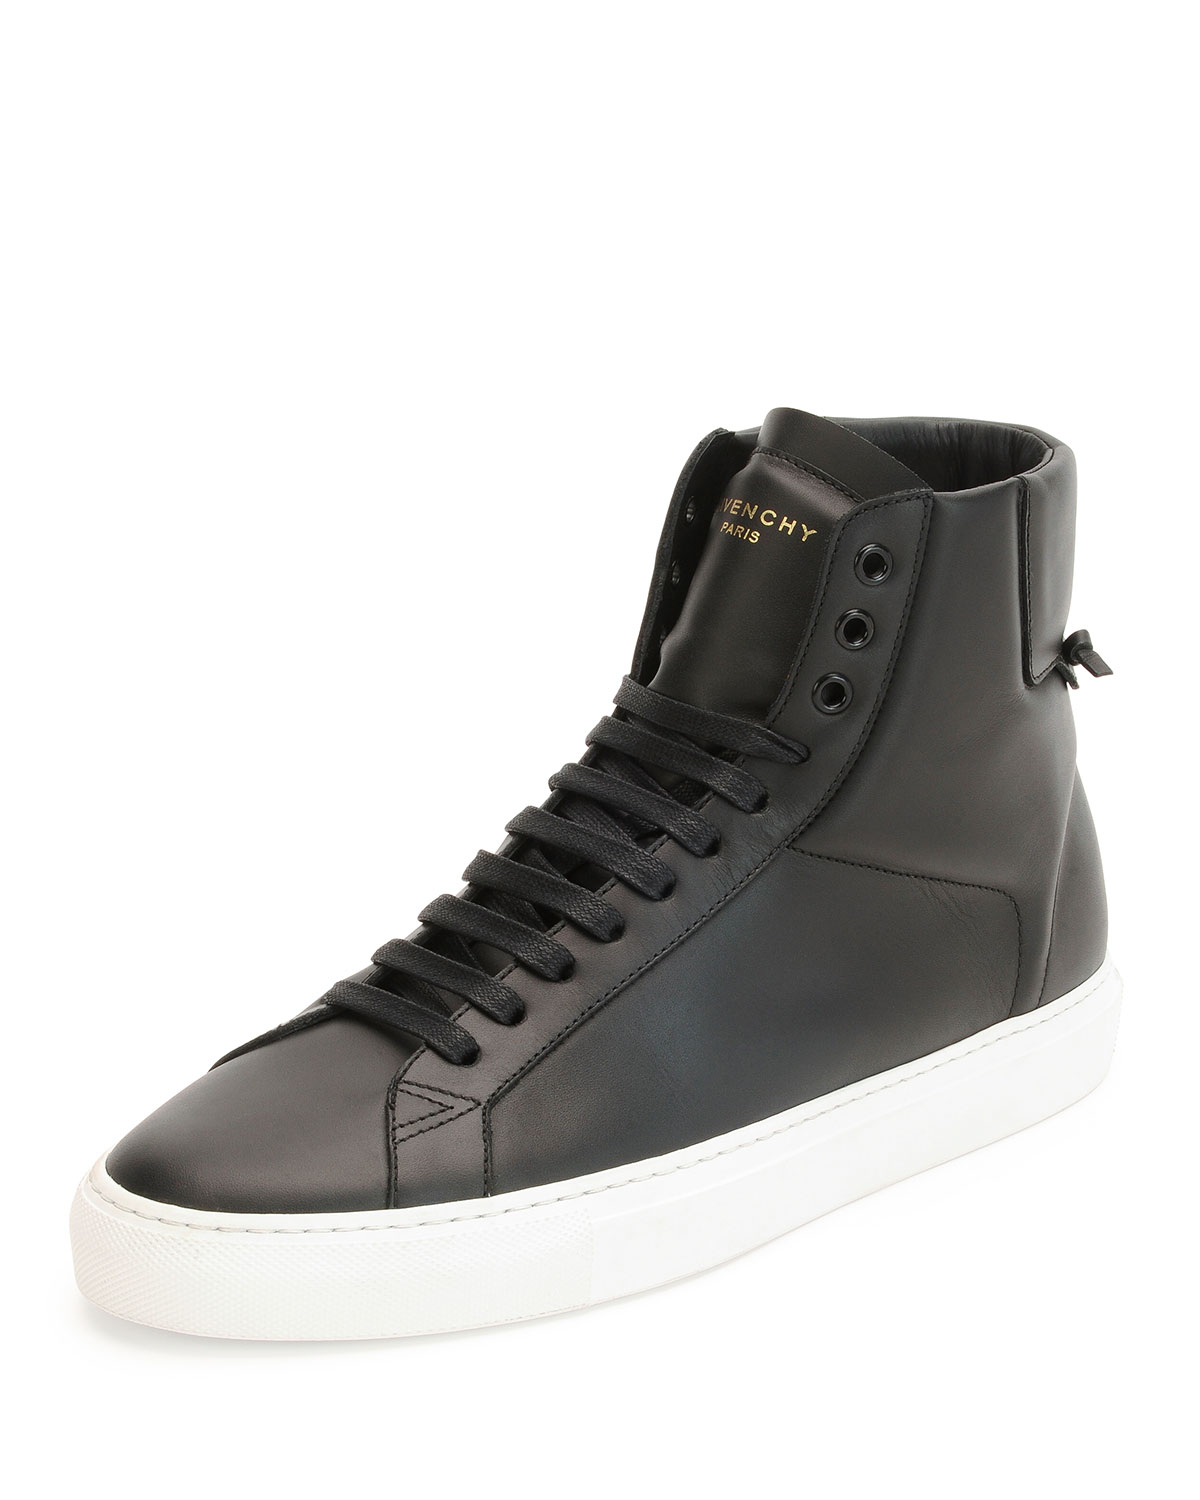 Urban Street hi-top sneakers - Black Givenchy Discount Wide Range Of Discount Recommend Sast Visa Payment c87f09Ow